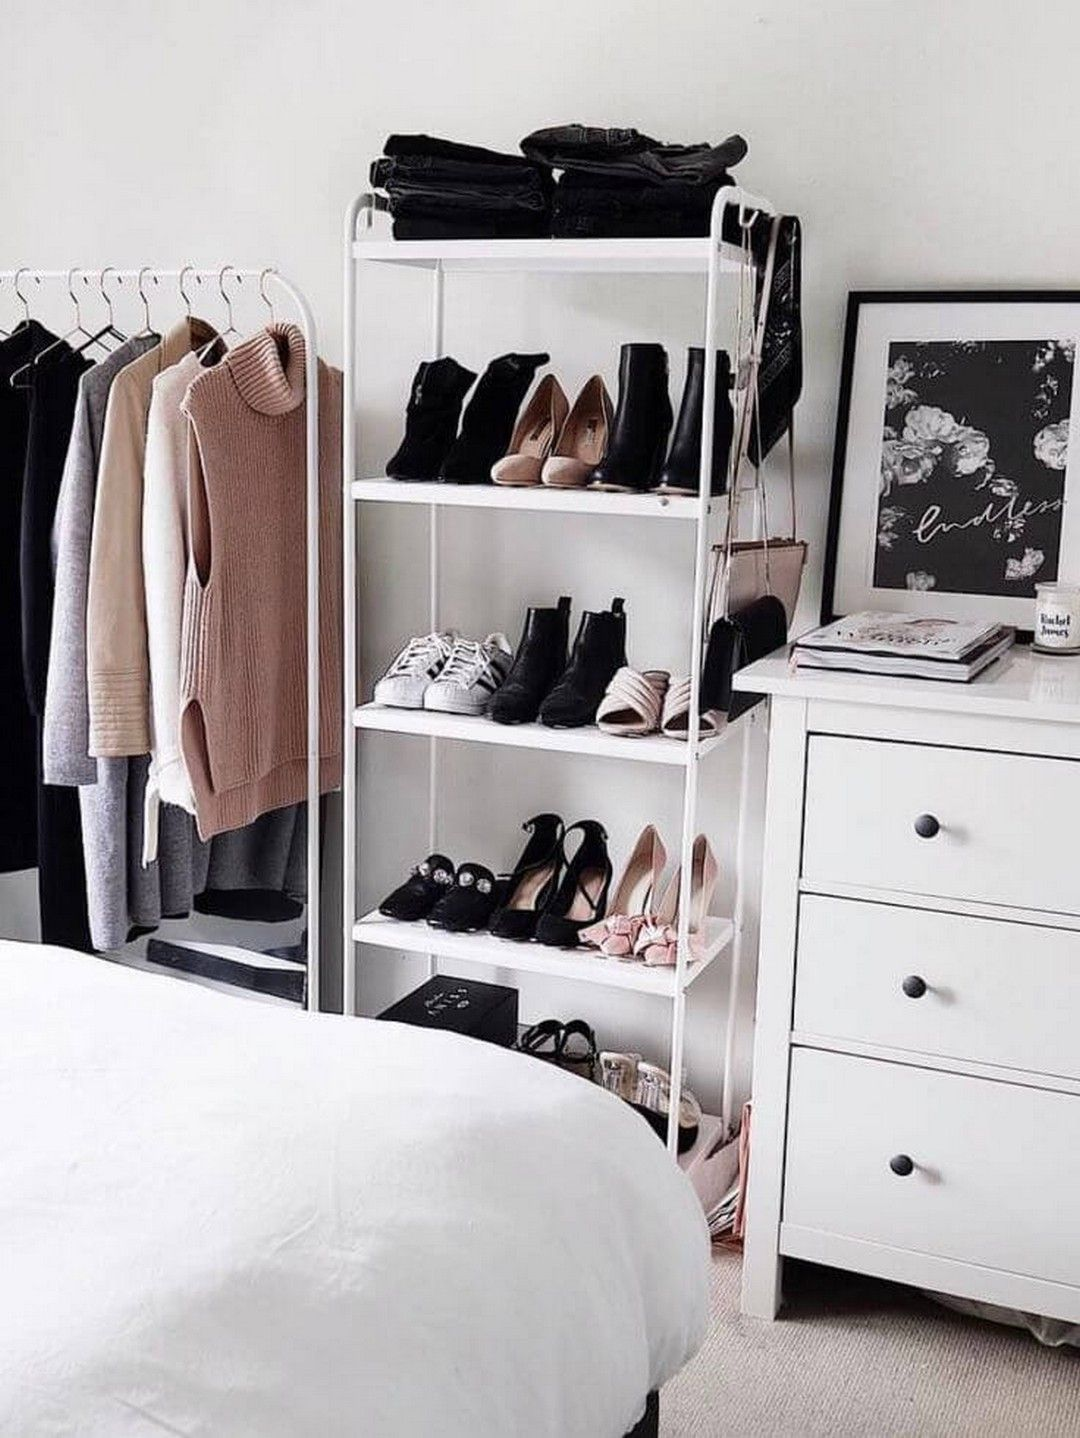 38 Smart Bedroom Organization Ideas A Great Way To Simplify Your Bedroom Goodnewsarchitecture Stylish Bedroom Organization Bedroom Teenage Girl Bedrooms Ideas